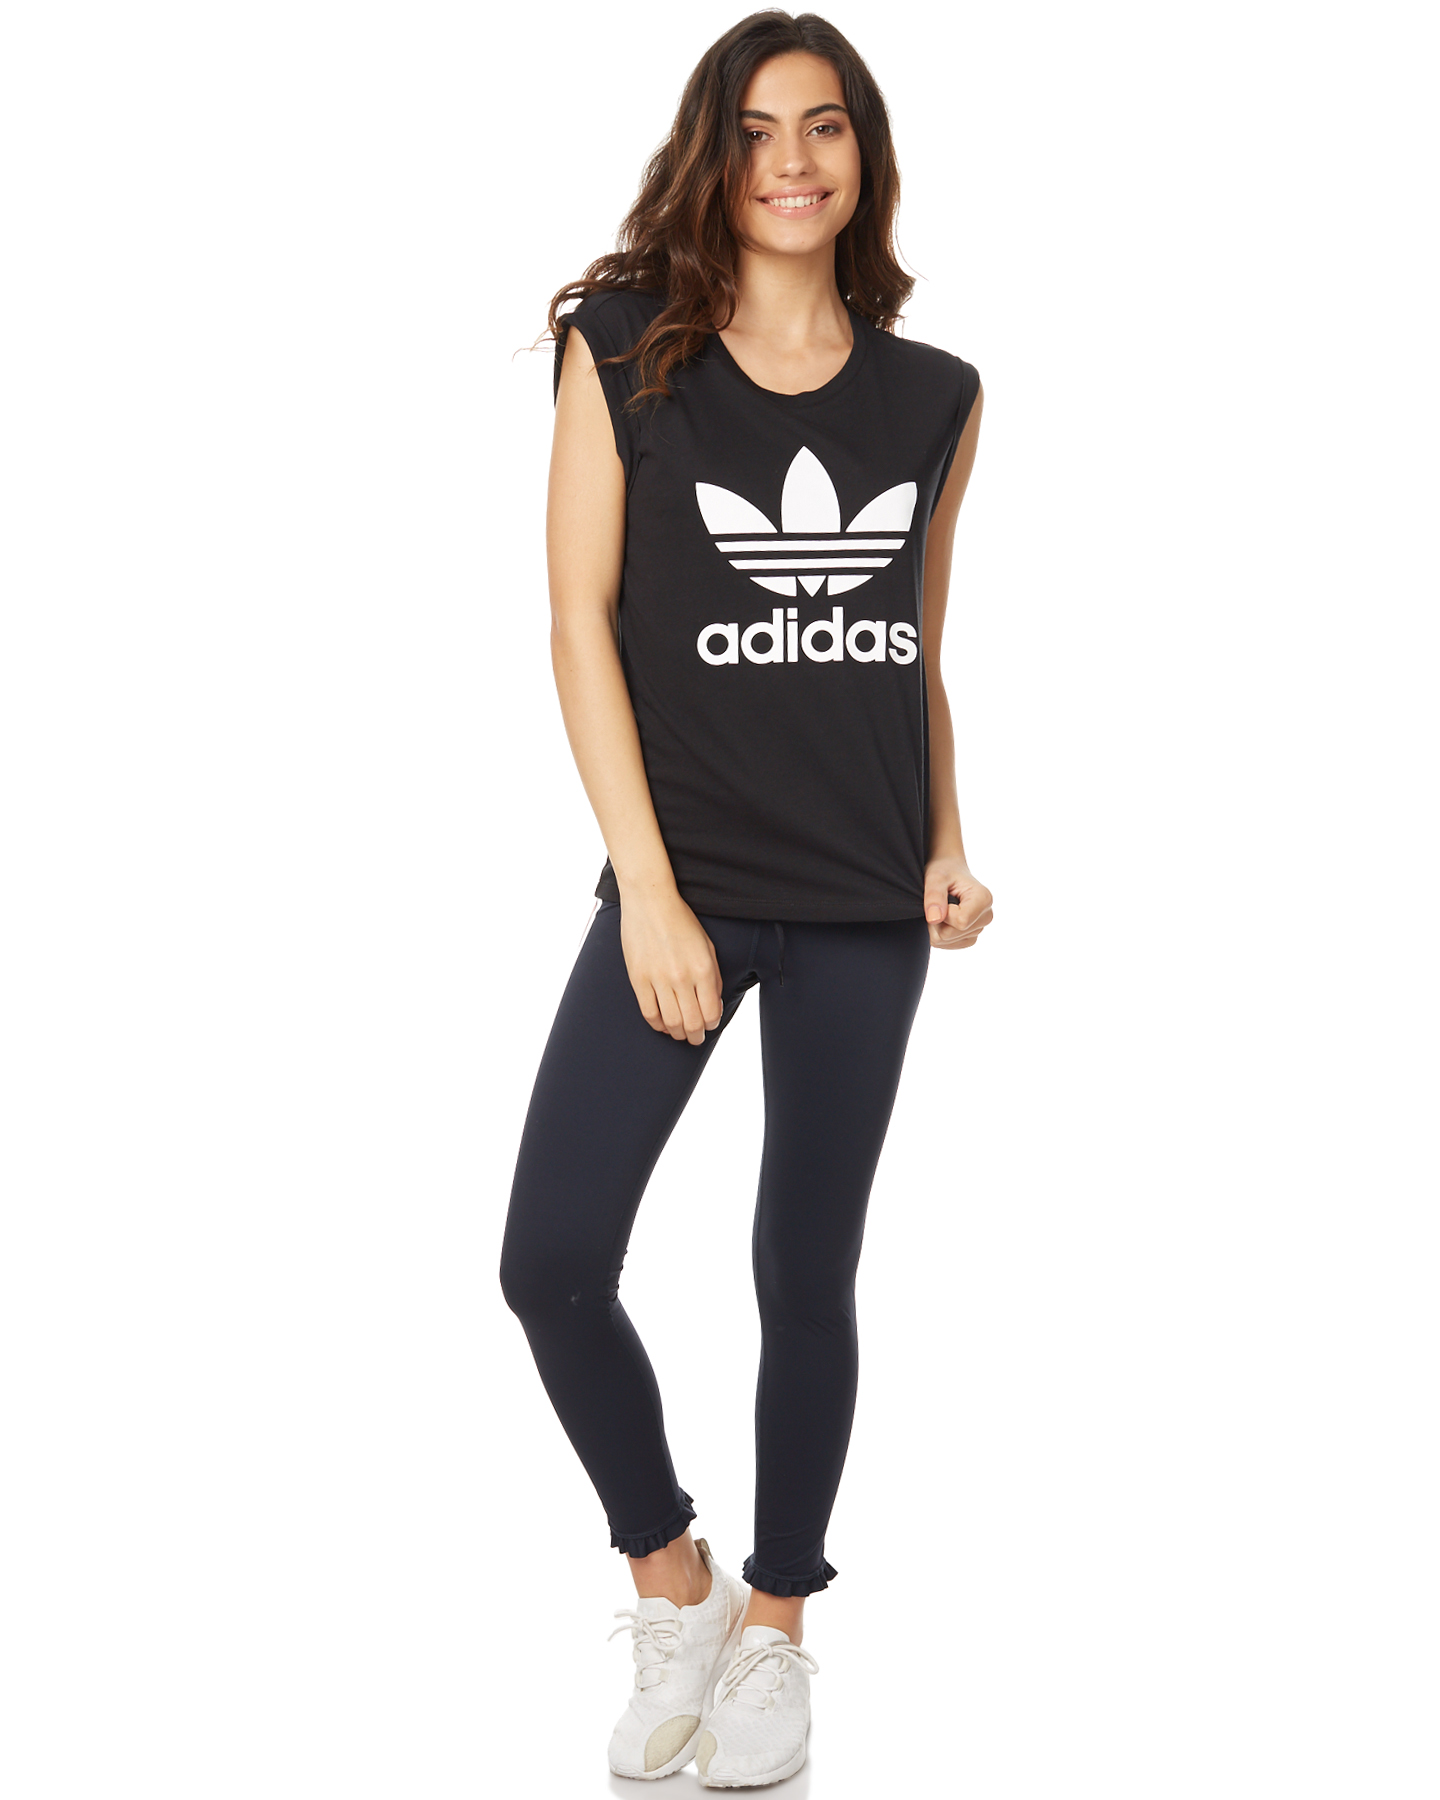 We've got great Summer sales and deals! Shop Shape has amazing Adidas plus size activewear deals. Get them before they are gone.